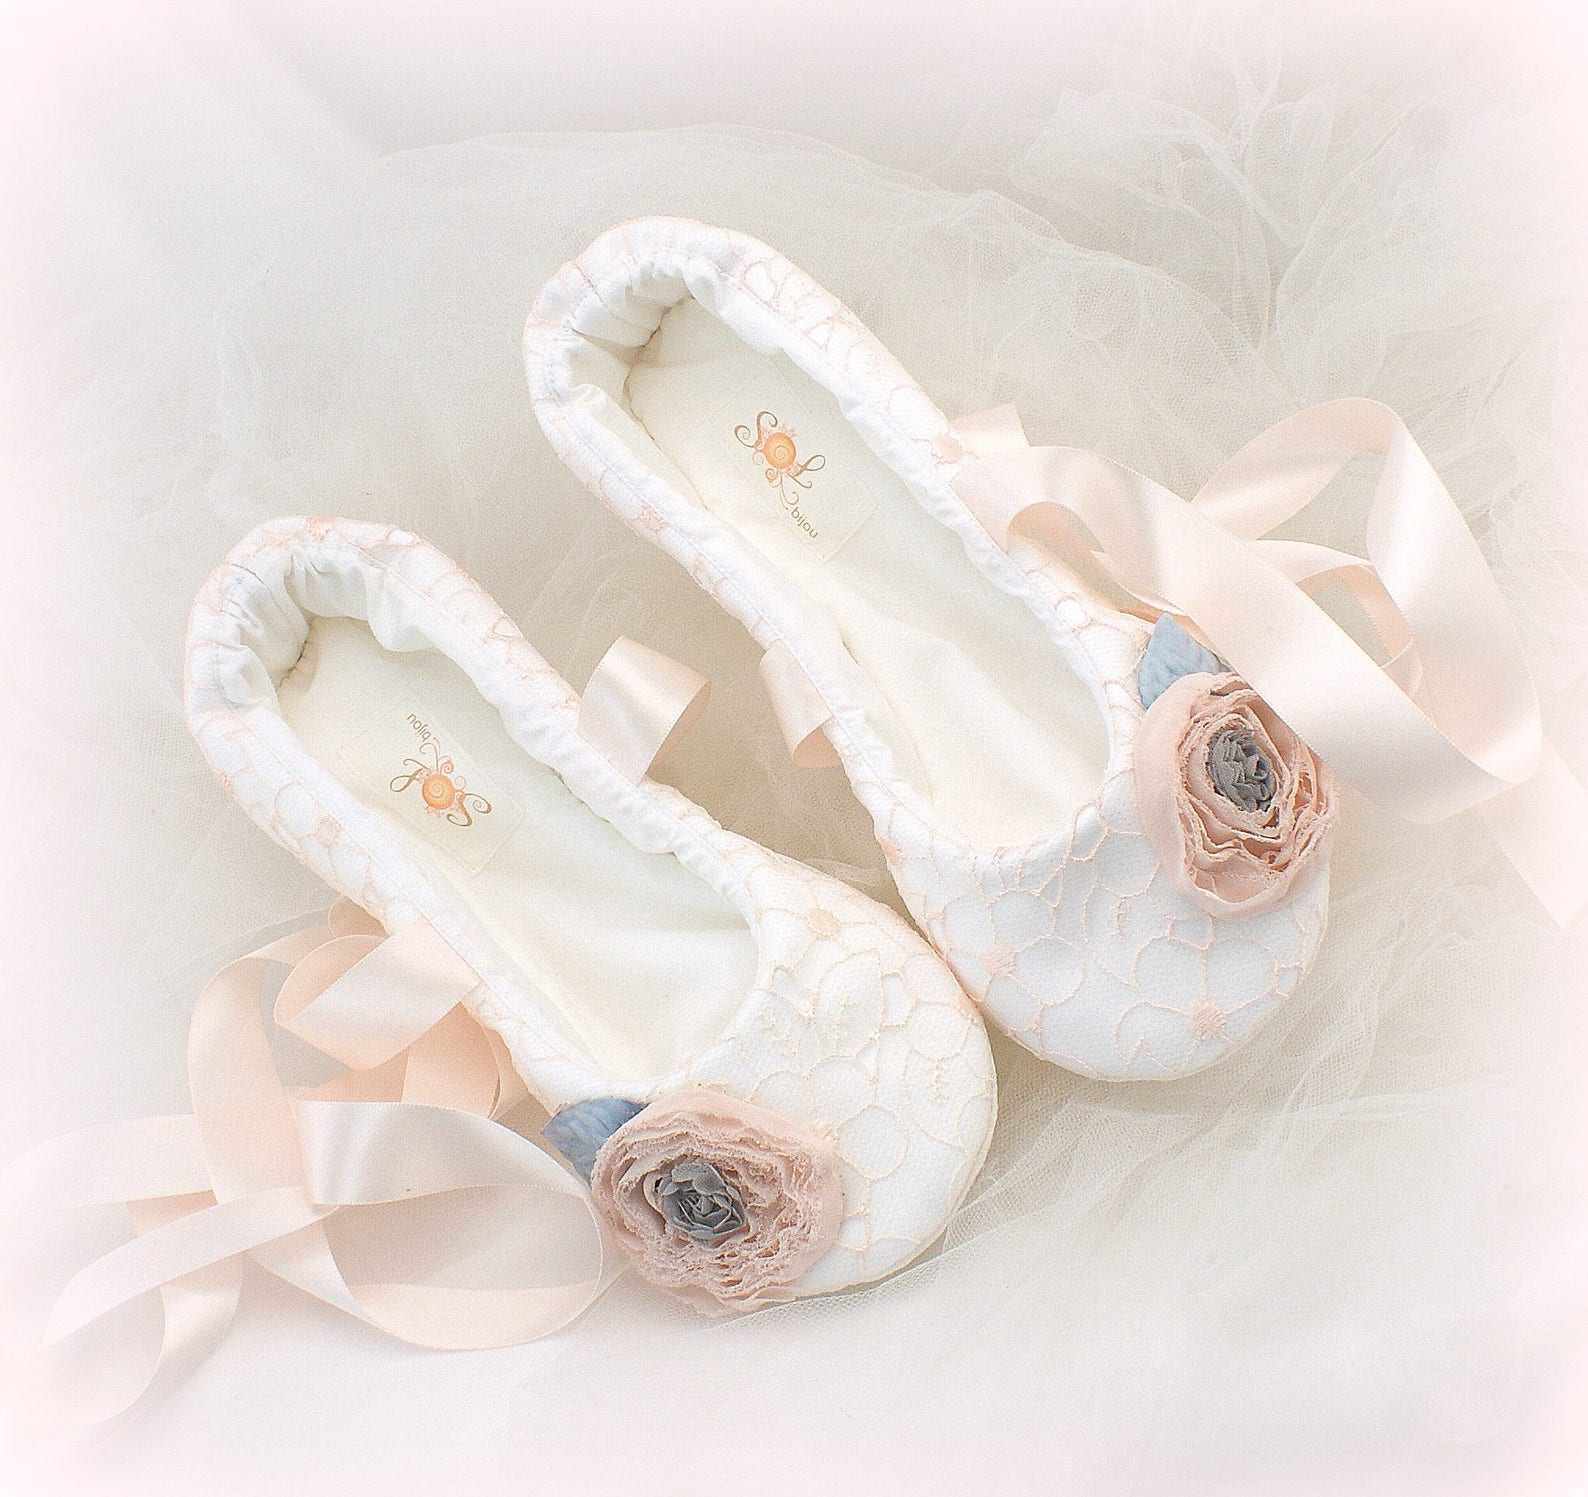 wedding ballet shoes blush ivory and blue wedding slippers with flowers custom ballet shoes ivory wedding flats shoes